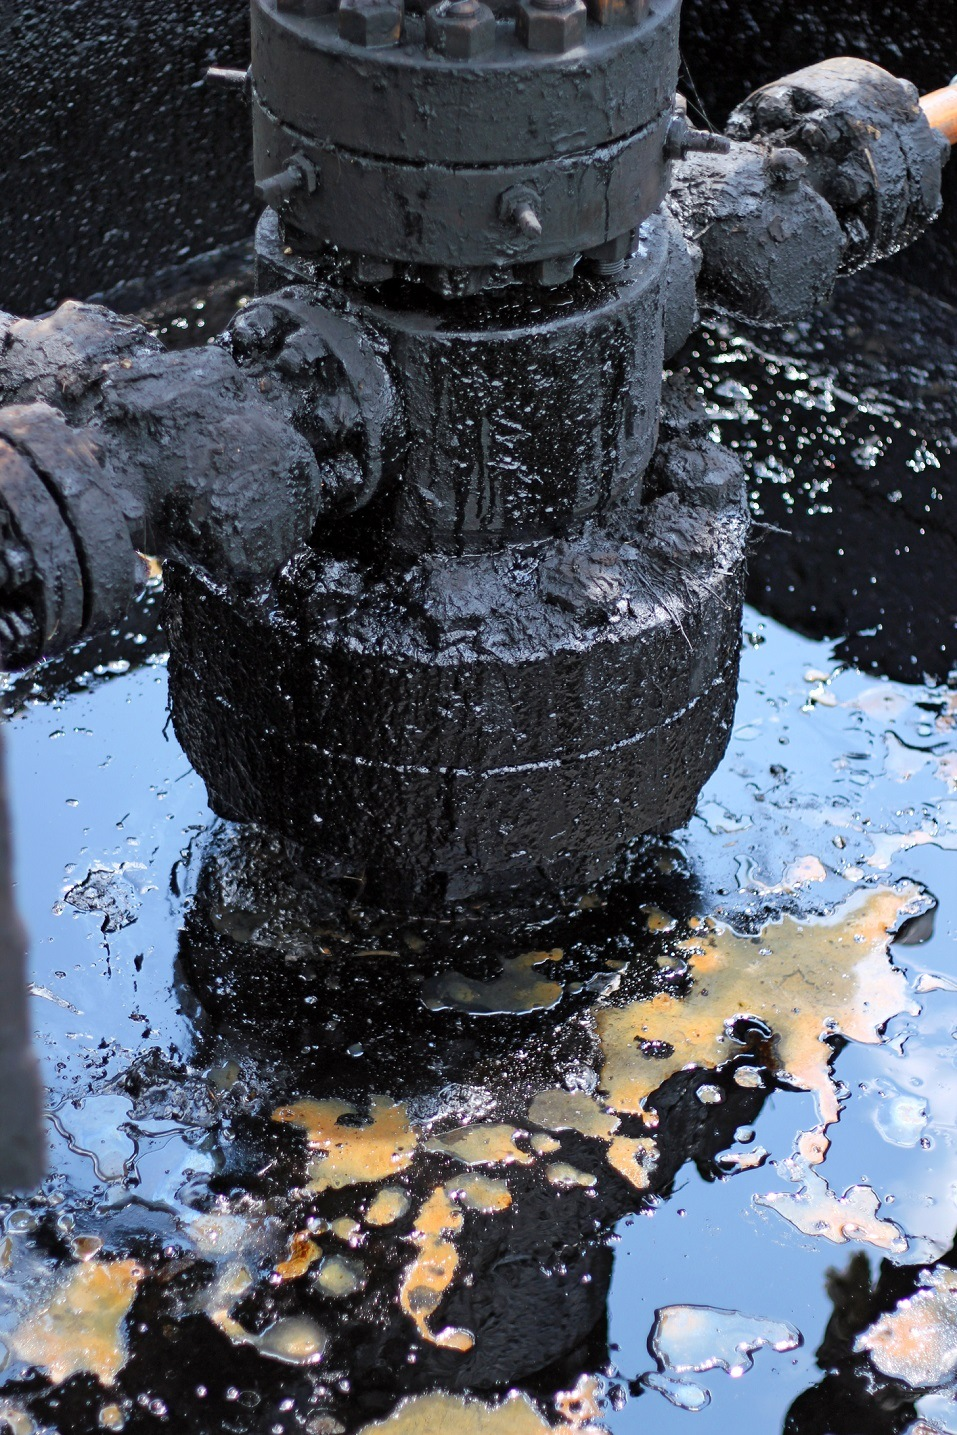 Crude oil spills around oil field